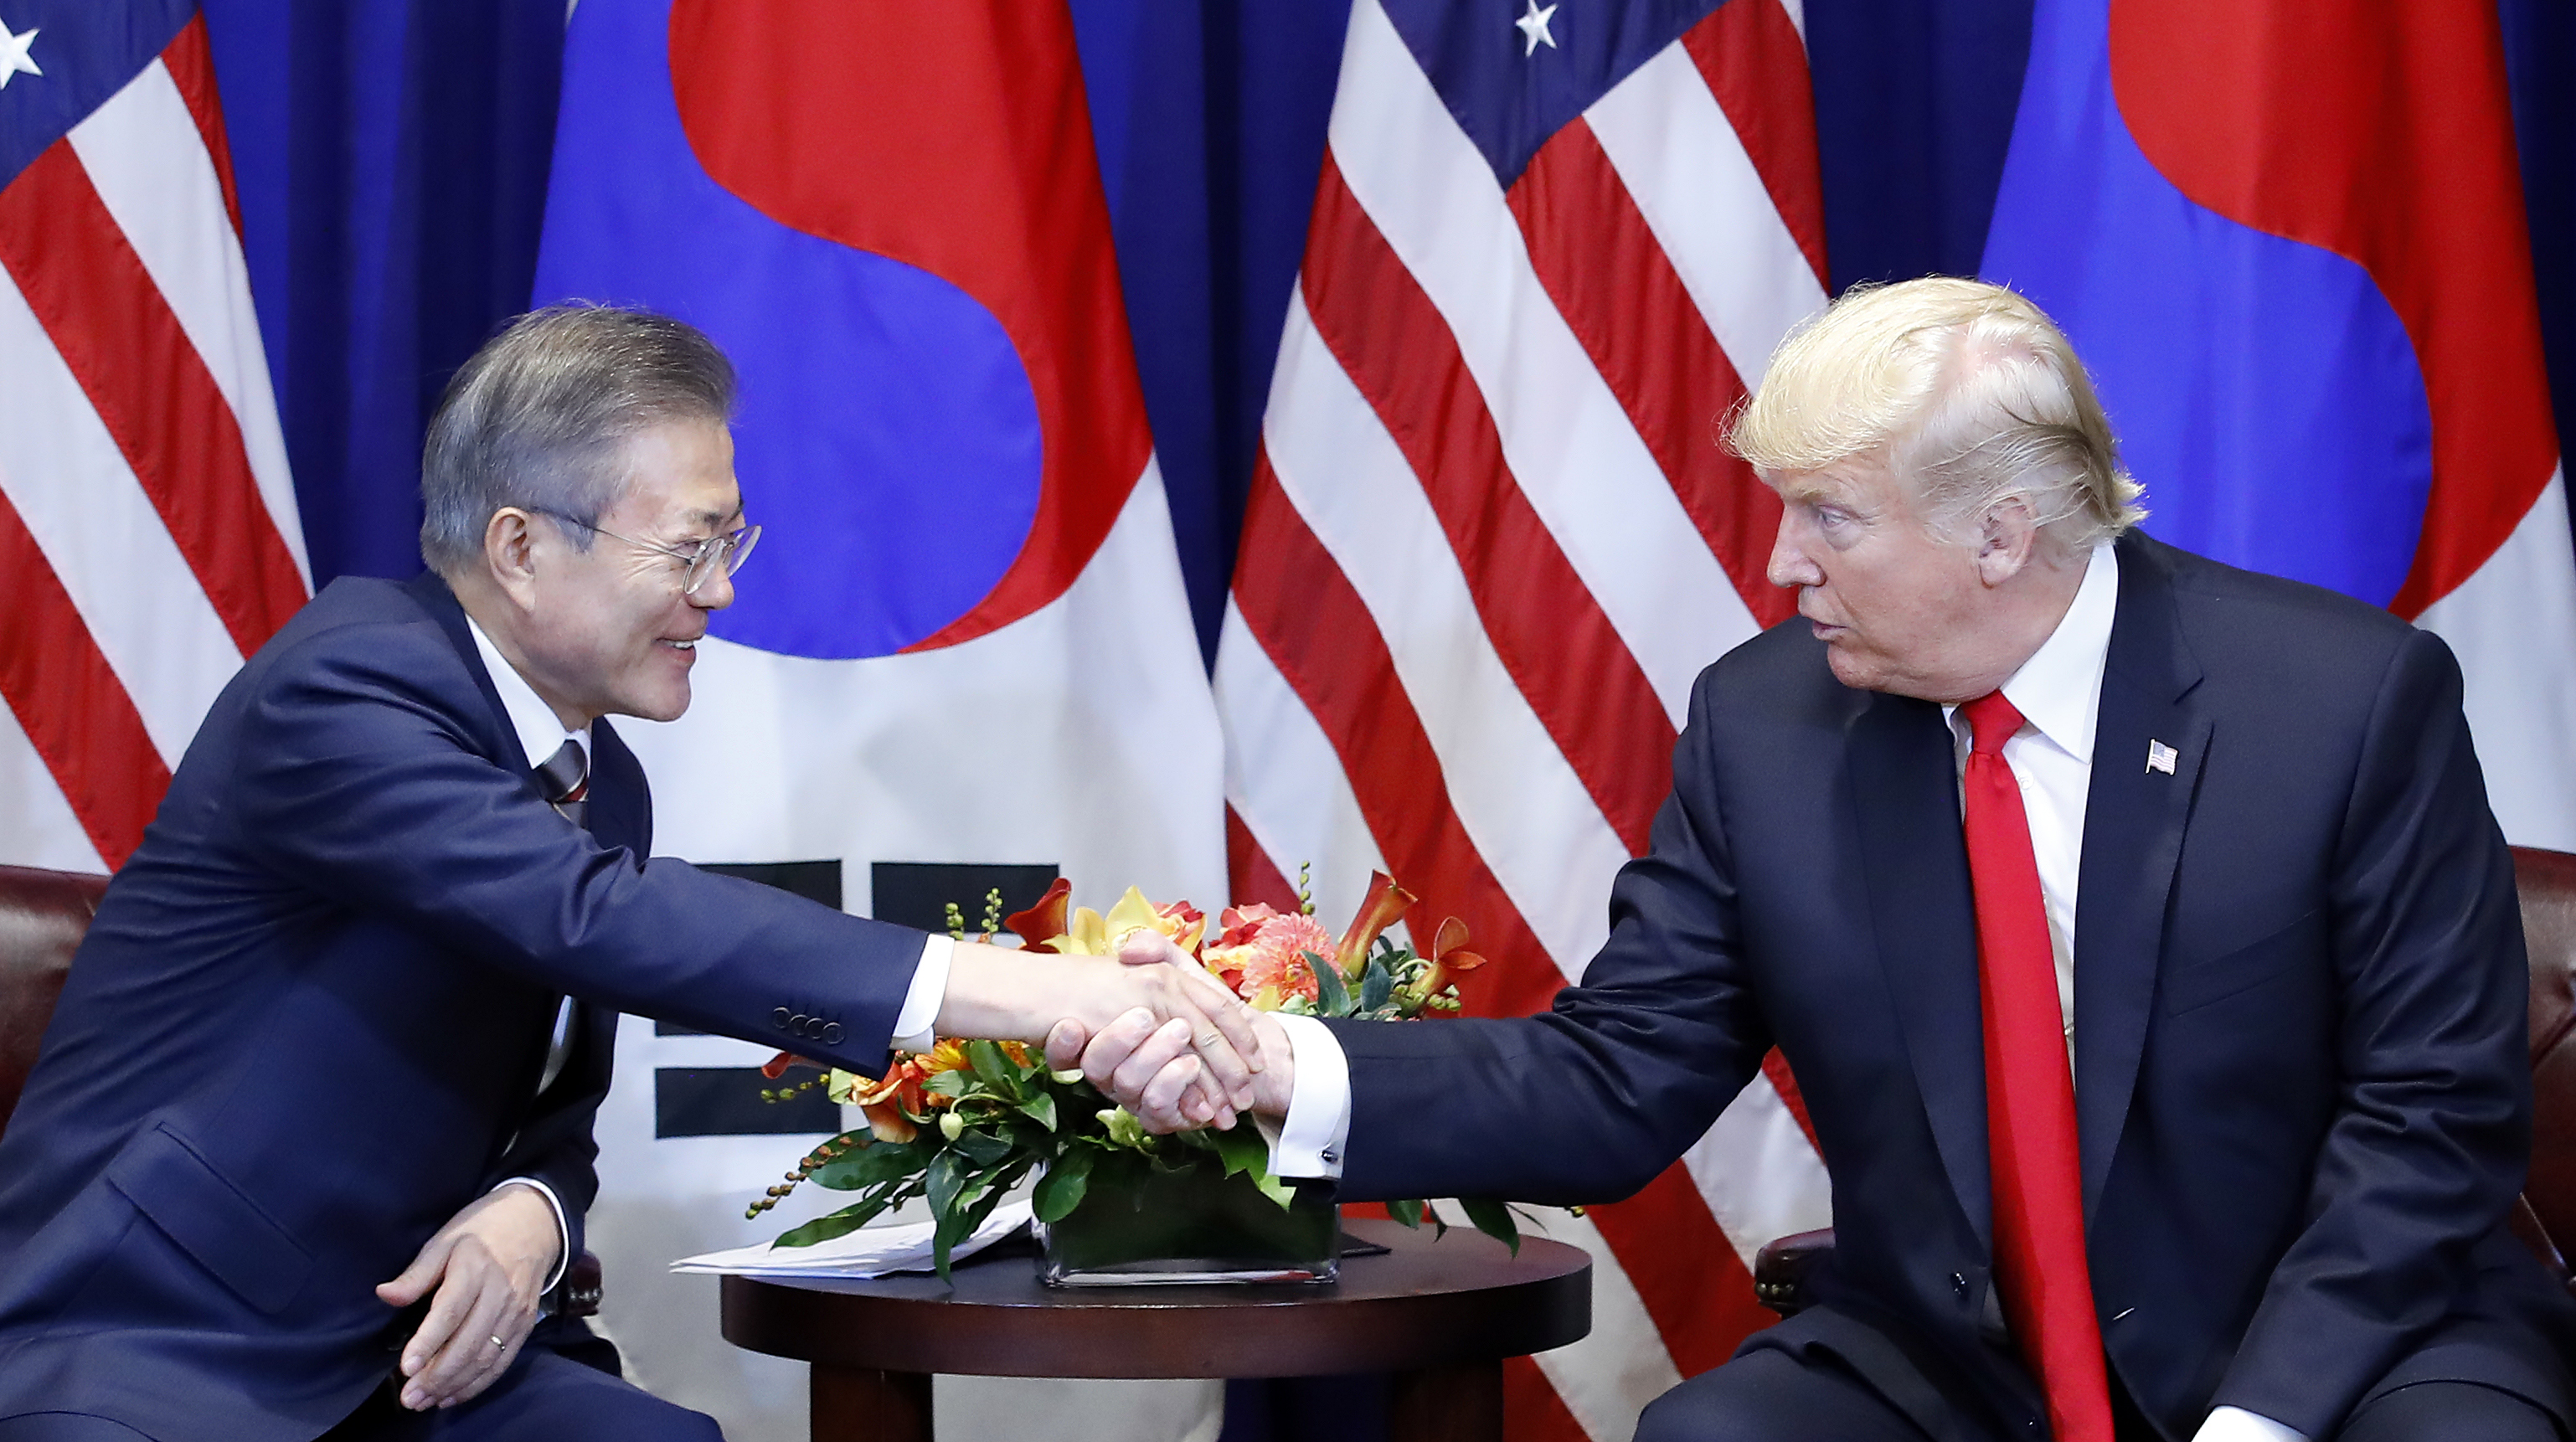 President Moon Jae-in (L) shakes hands with U.S. President Donald Trump during their summit in New York on September 24, 2018. <Photo: Yonhap News>